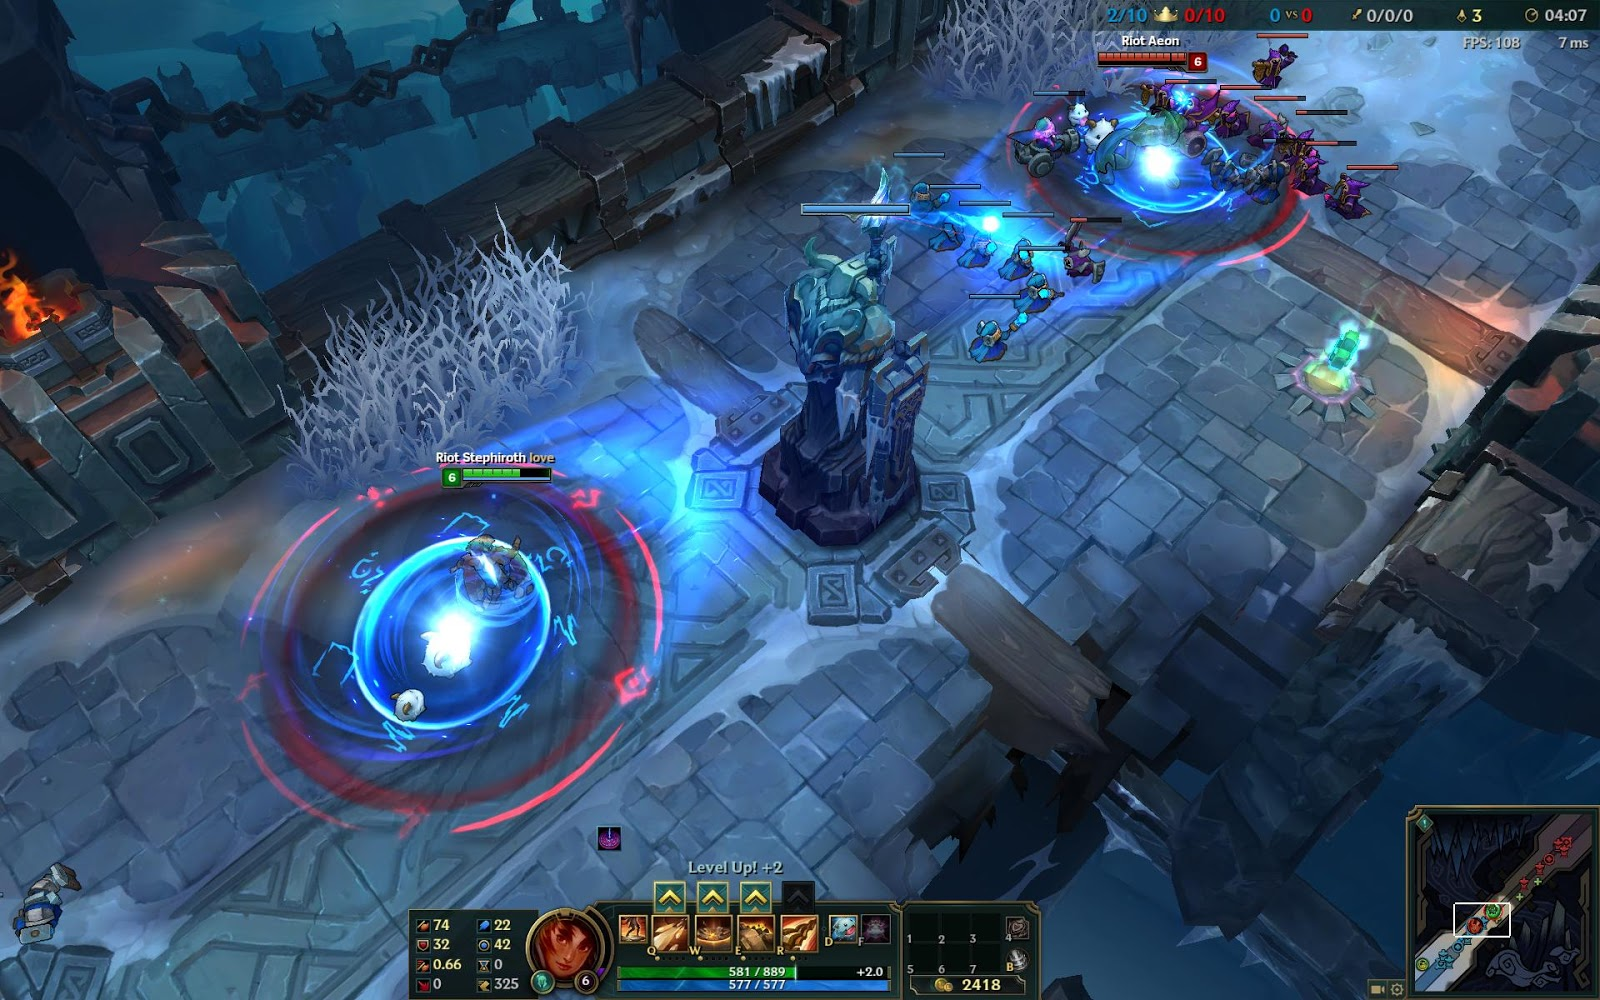 Join The Party Toss Snowballs Summon Poro King Ryze To Occasion Teleport Ahhh Another Portal